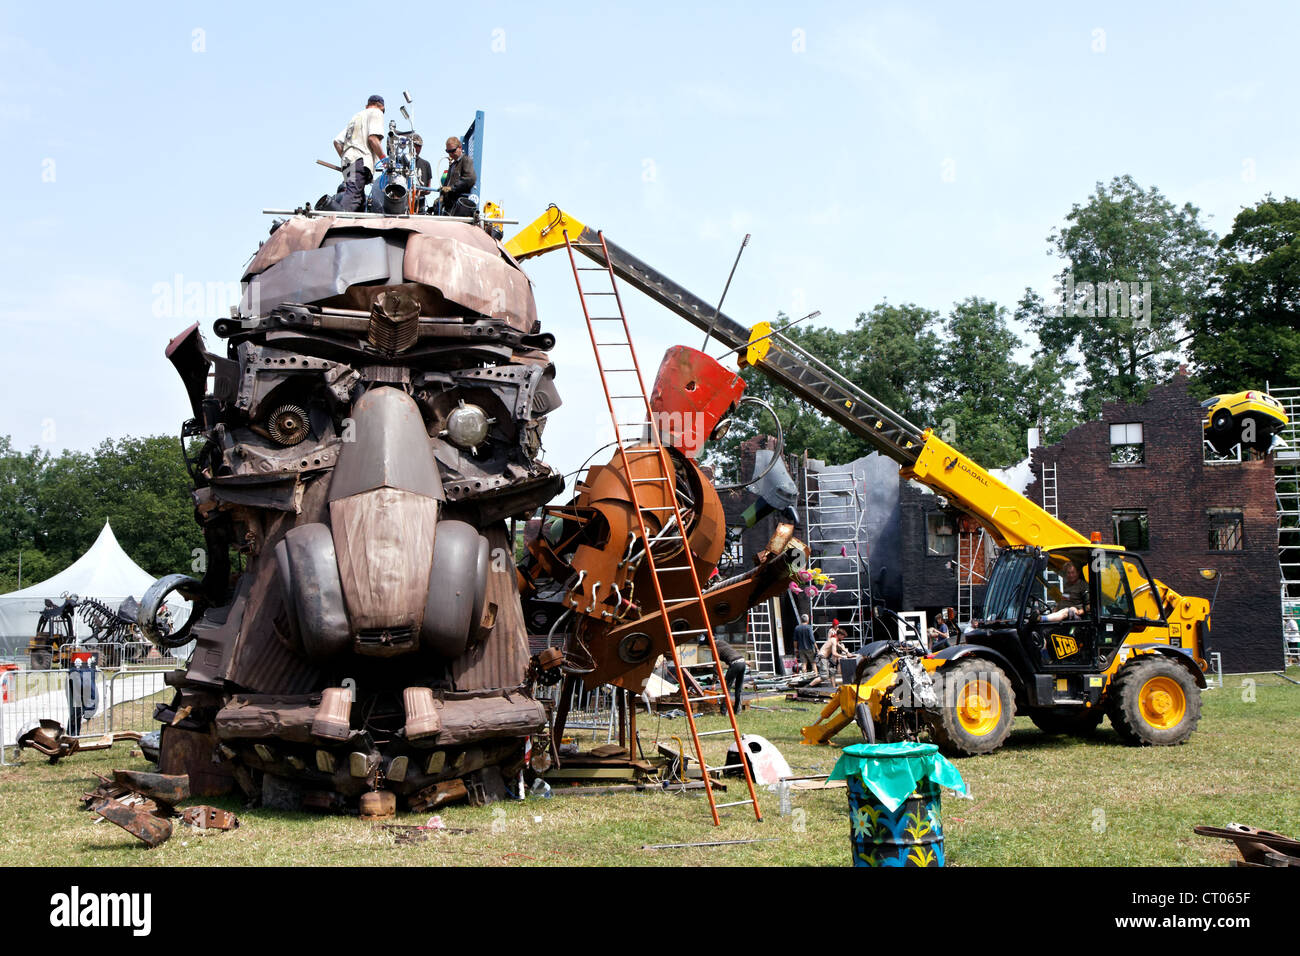 Scrap Metal Sculpture Stock Photos & Scrap Metal Sculpture Stock ...